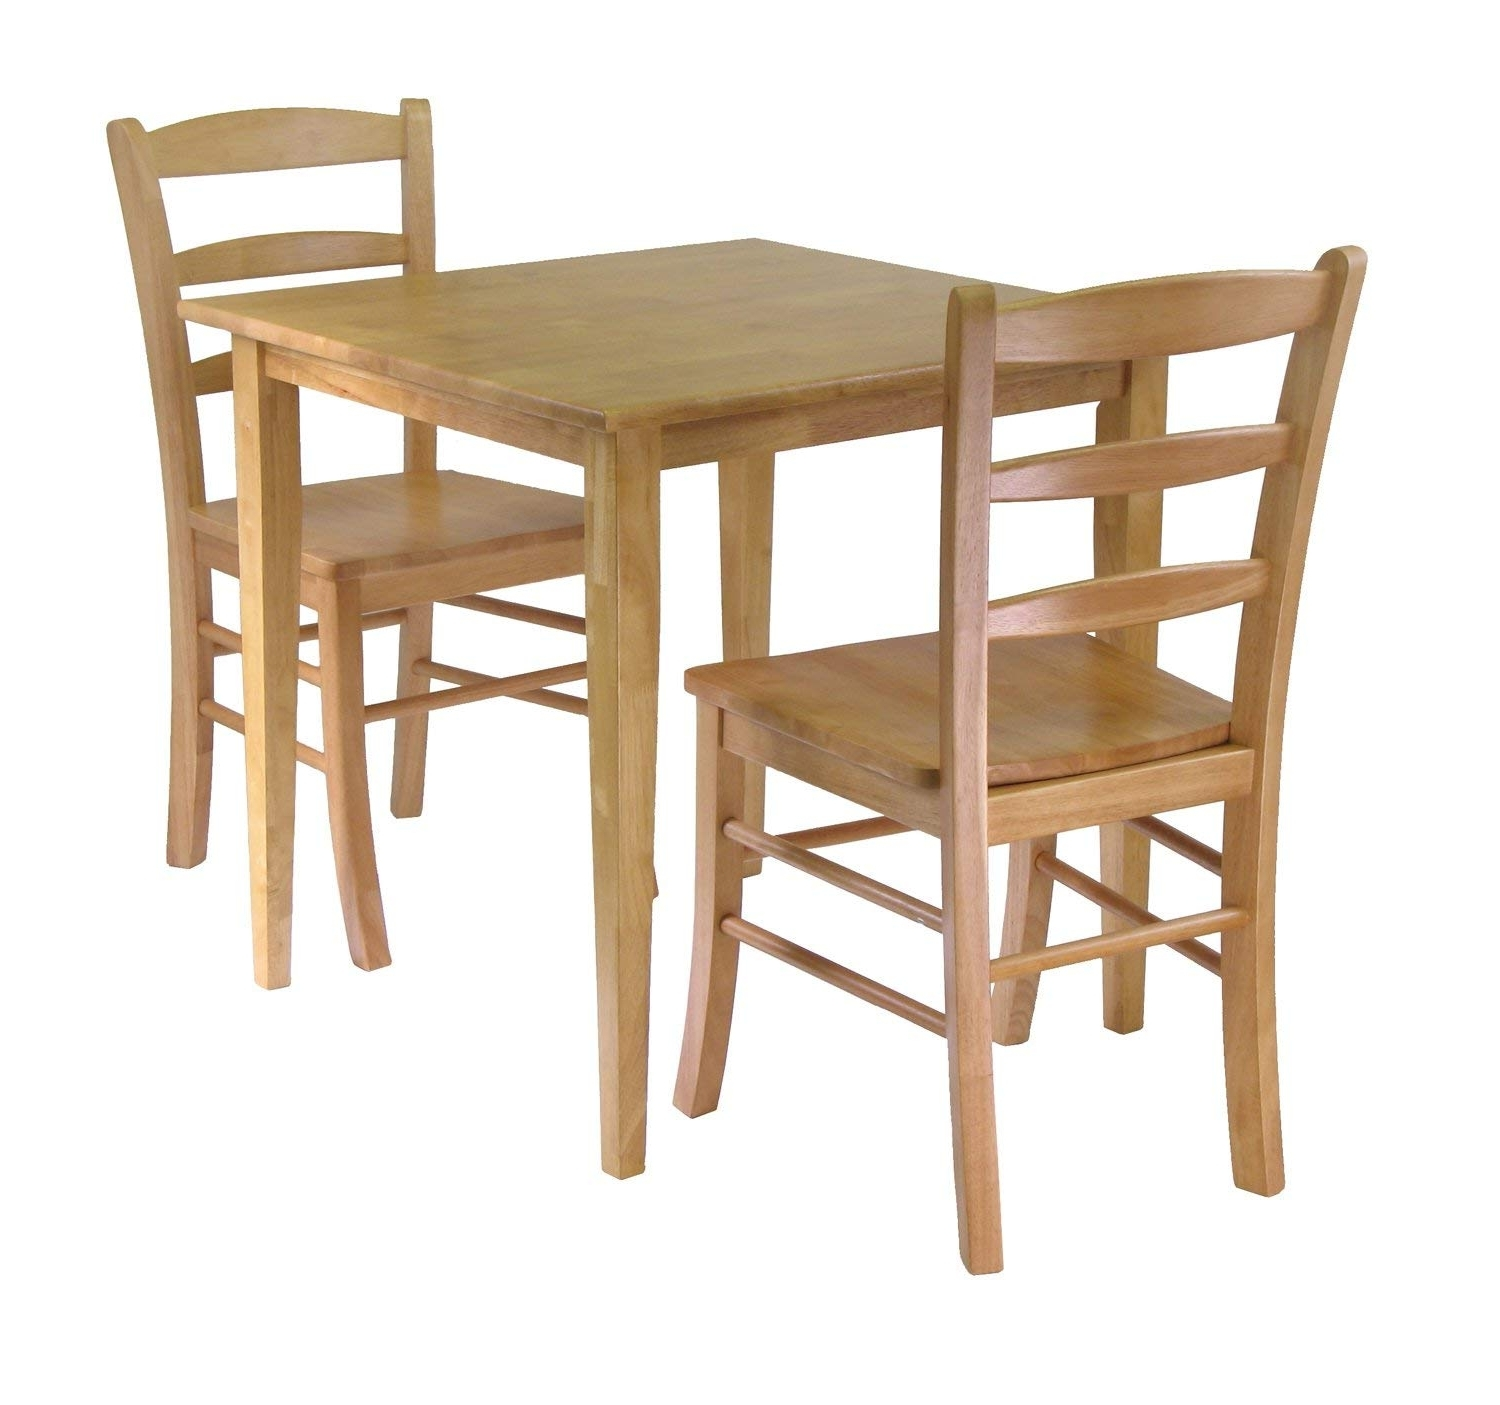 Two Person Dining Table Sets With Regard To Trendy Amazon – Winsome Groveland Square Dining Table With 2 Chairs,  (View 5 of 25)